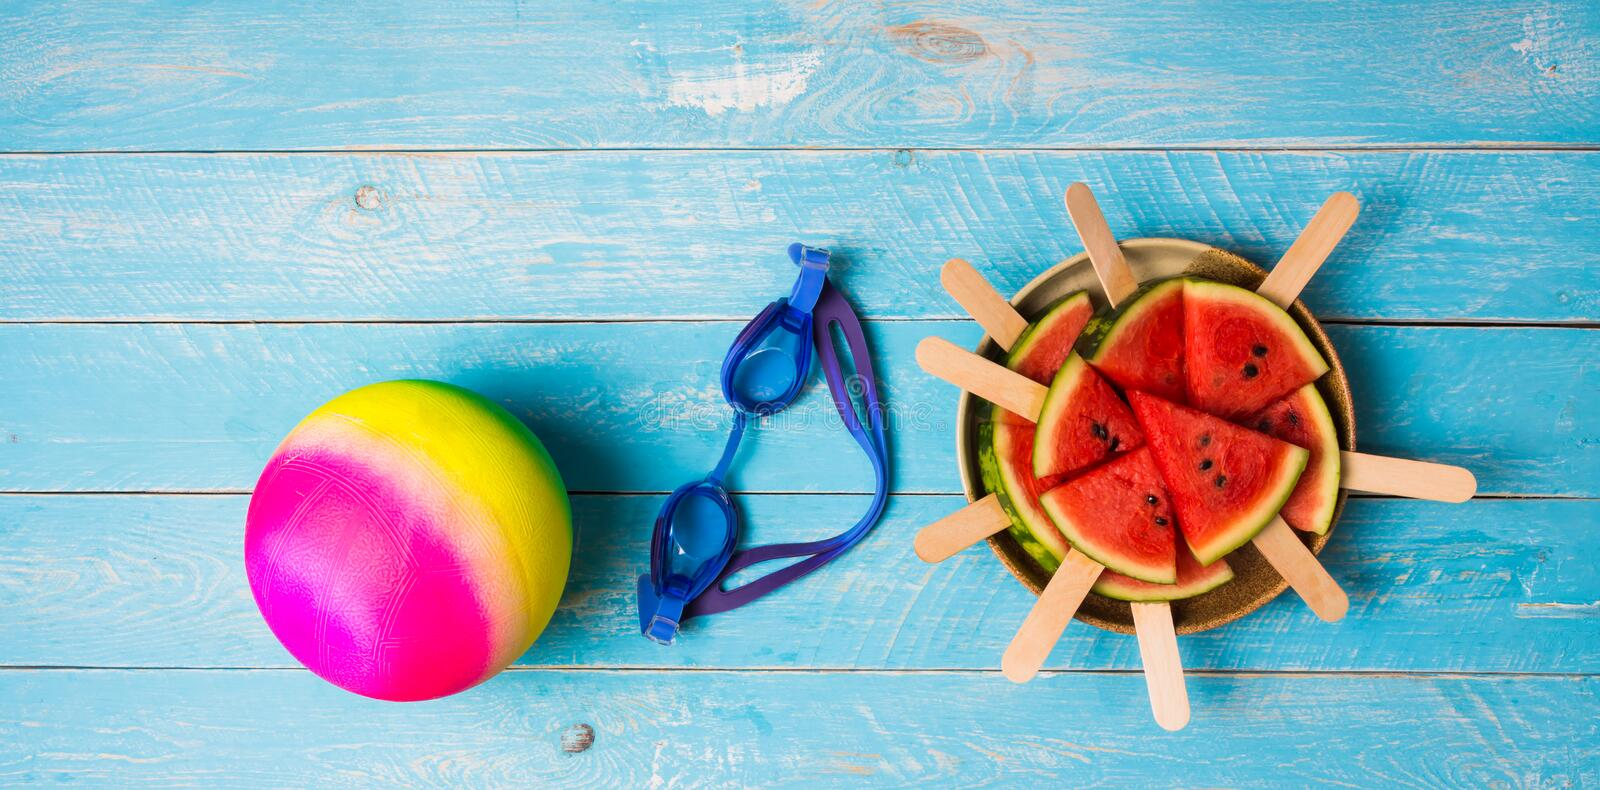 Item for summer. Watermelon cut into pieces Plugged in with a stick, making it like ice cream, stacked in a side dish with swimming goggles and ball for water royalty free stock photography